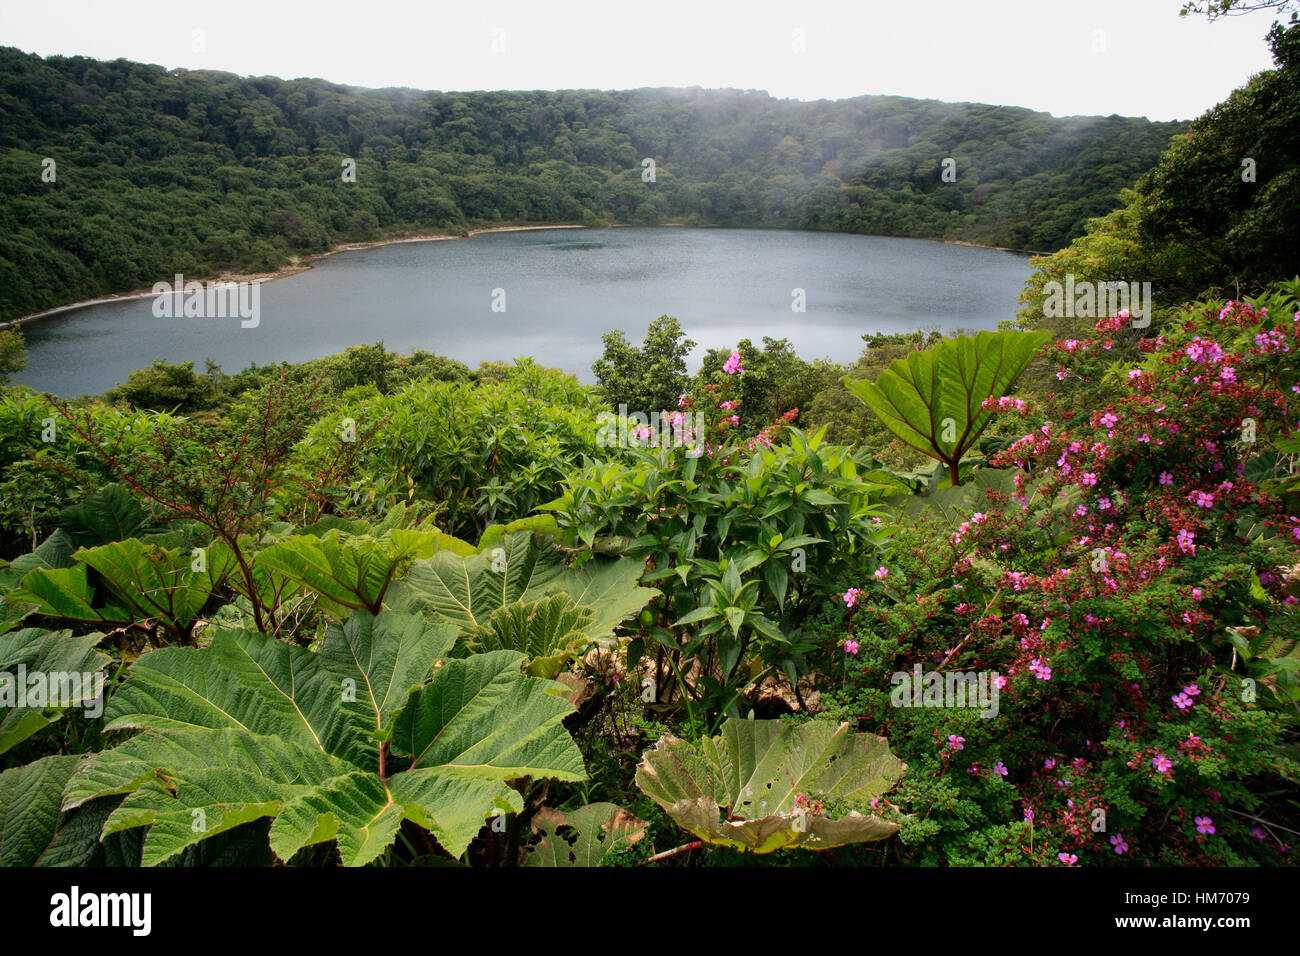 Huge poor man's umbrella (Gunnera insignis) leaves and Melastoma of the Volcanoes flowers (Monochaetum vulcanicum) - Stock Image